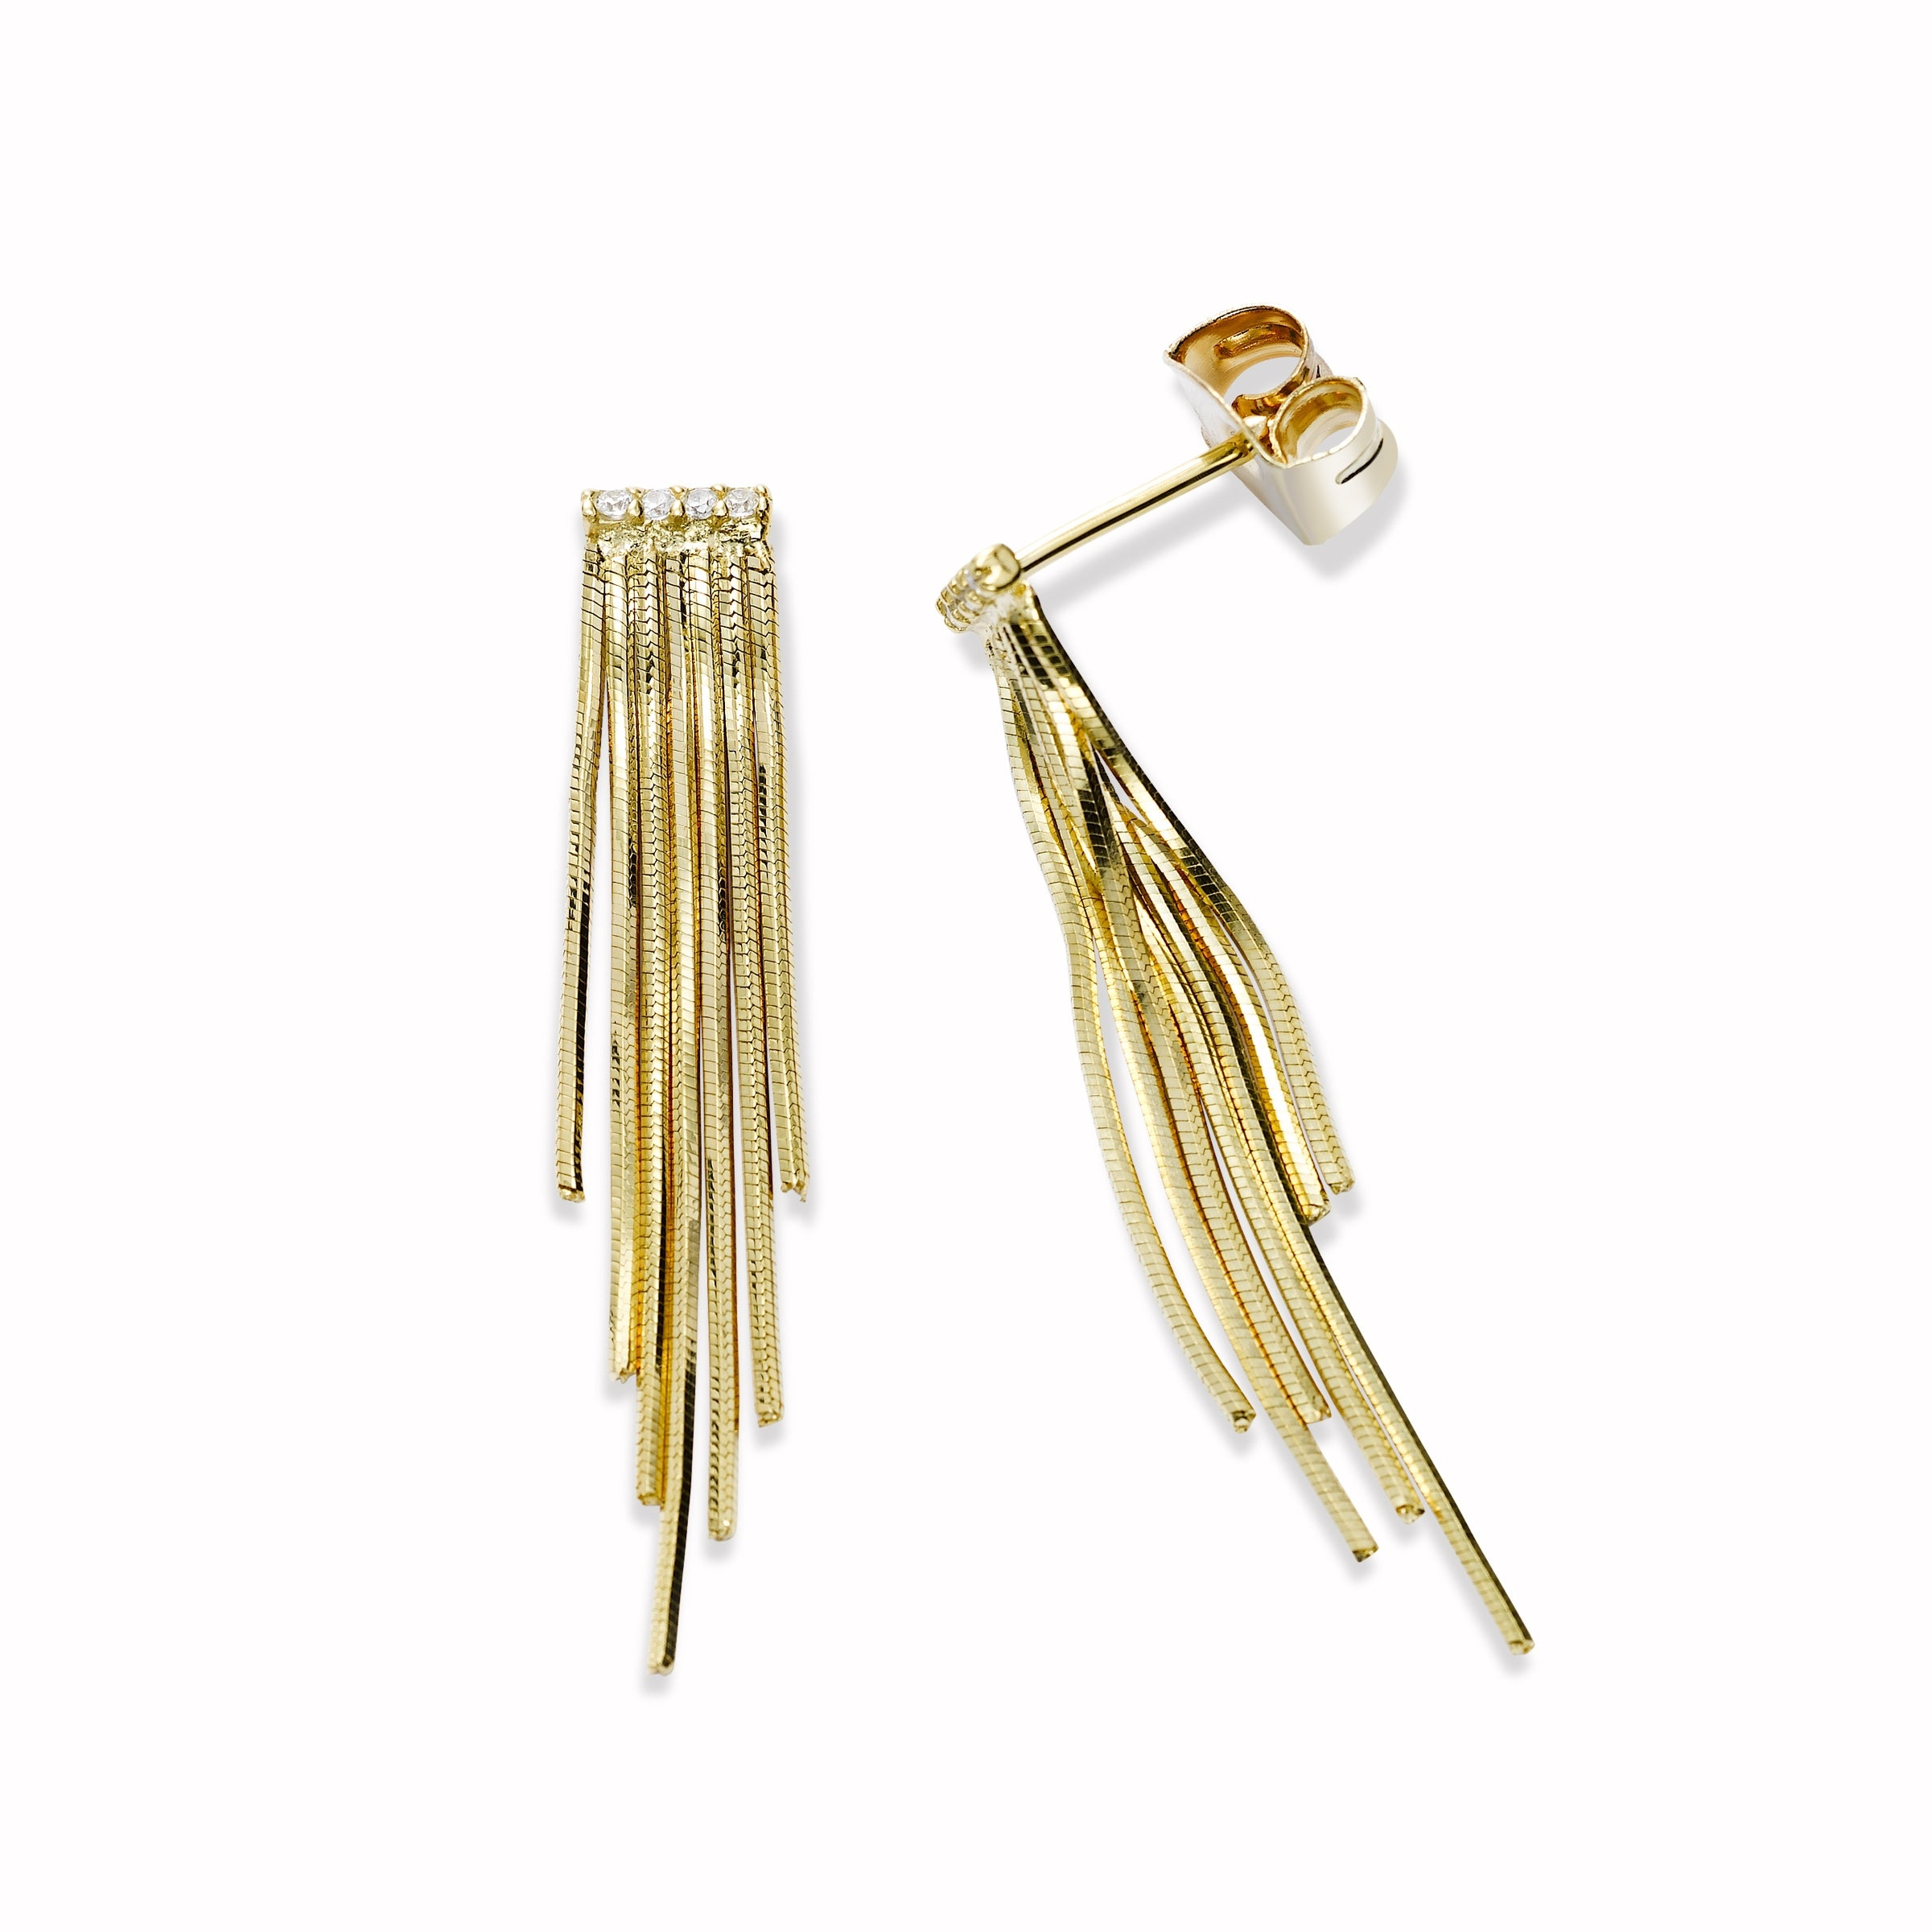 Tassel Earrings with CZ Accent, Gold Tone, by Tai Design